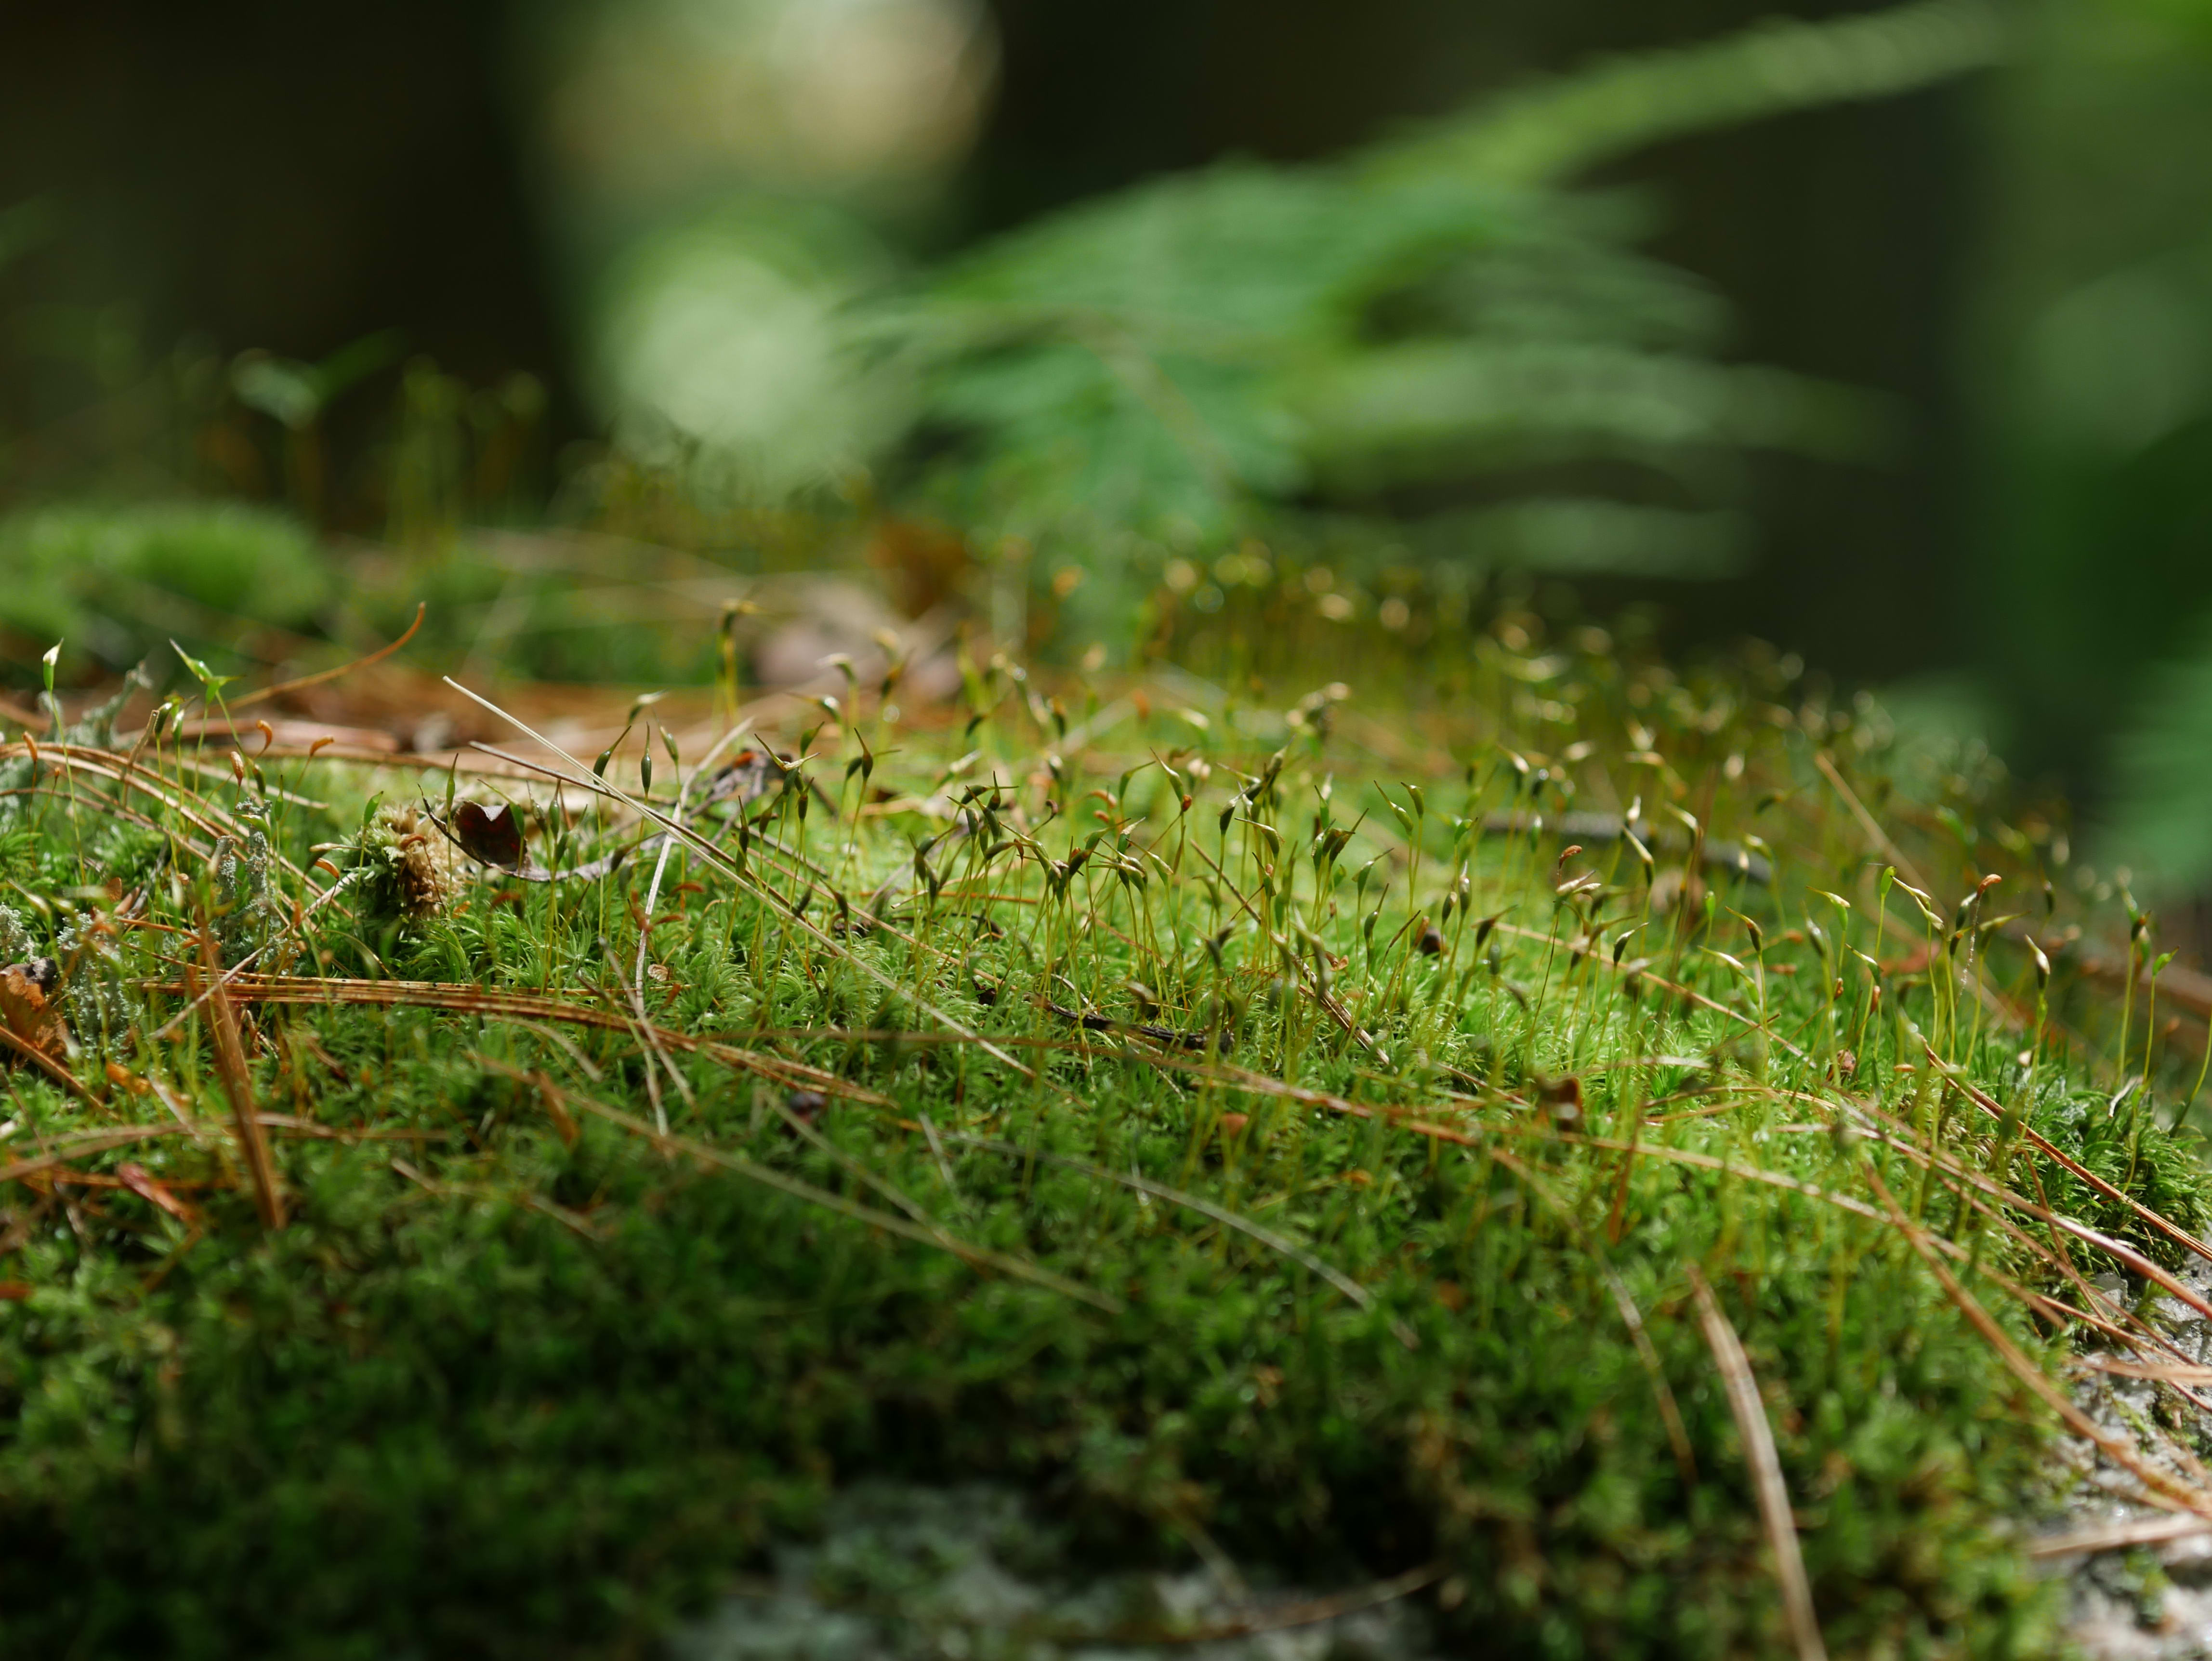 A photo taken by the Panasonic Lumix G7 of moss.